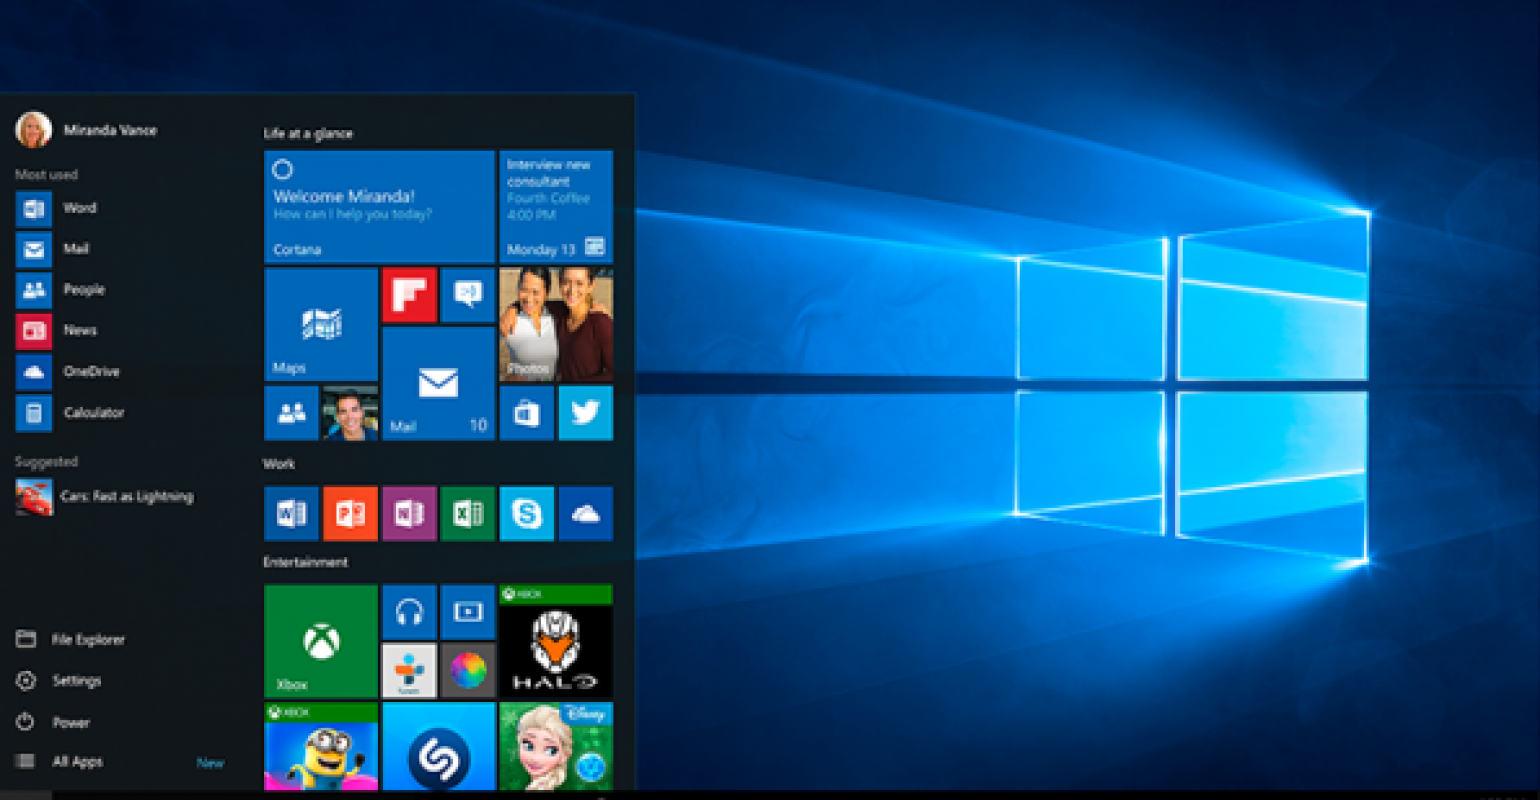 Missing Windows 10 upgrades in Configuration Manager | IT Pro